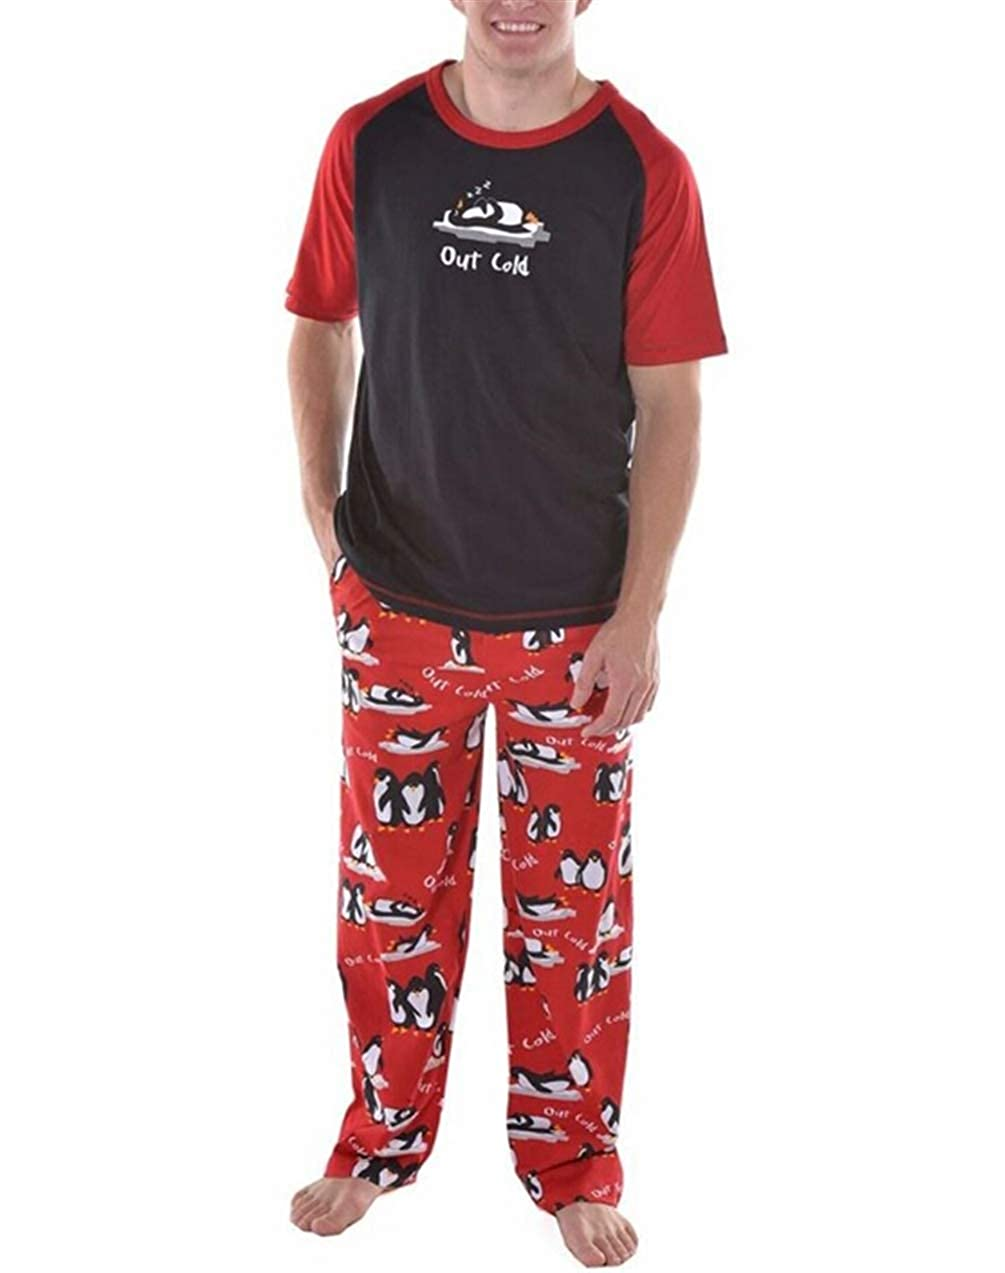 Charmemory Penguin Family Matching Pajamas Parent-Child Pjs Sleepwear Outfit